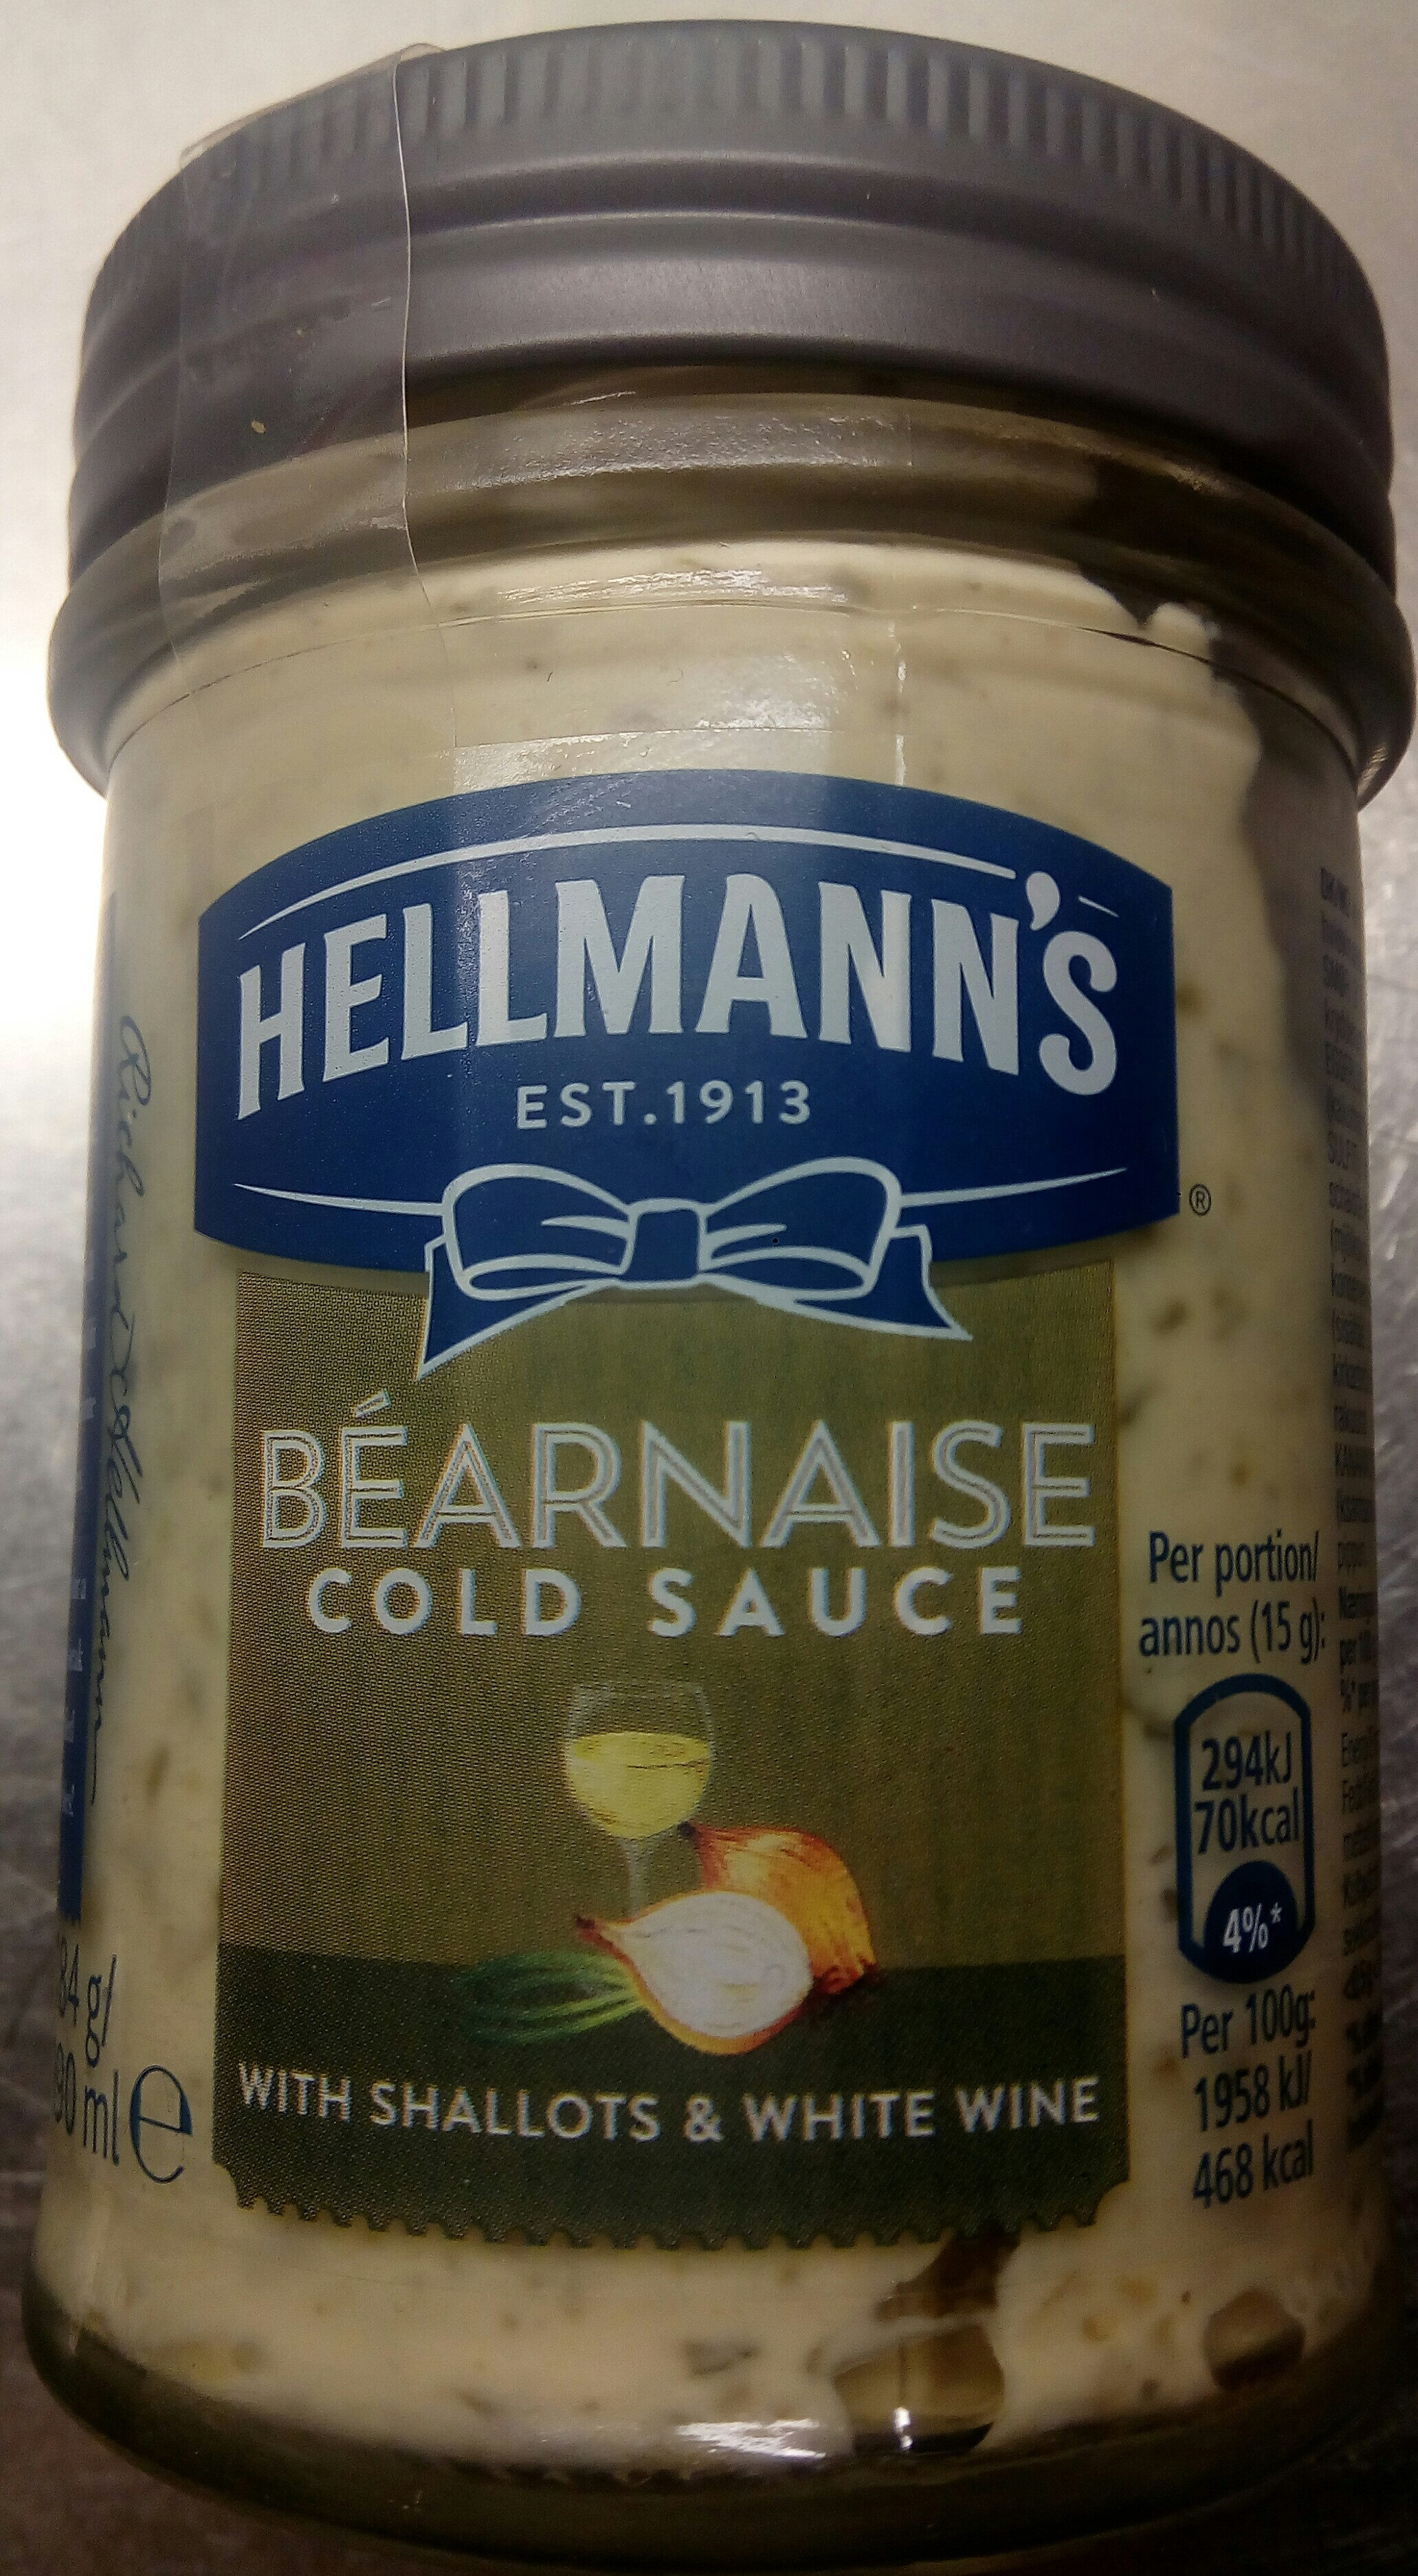 Hellmann's Béarnaise Cold Sauce with Shallots & White Wine - Produit - sv